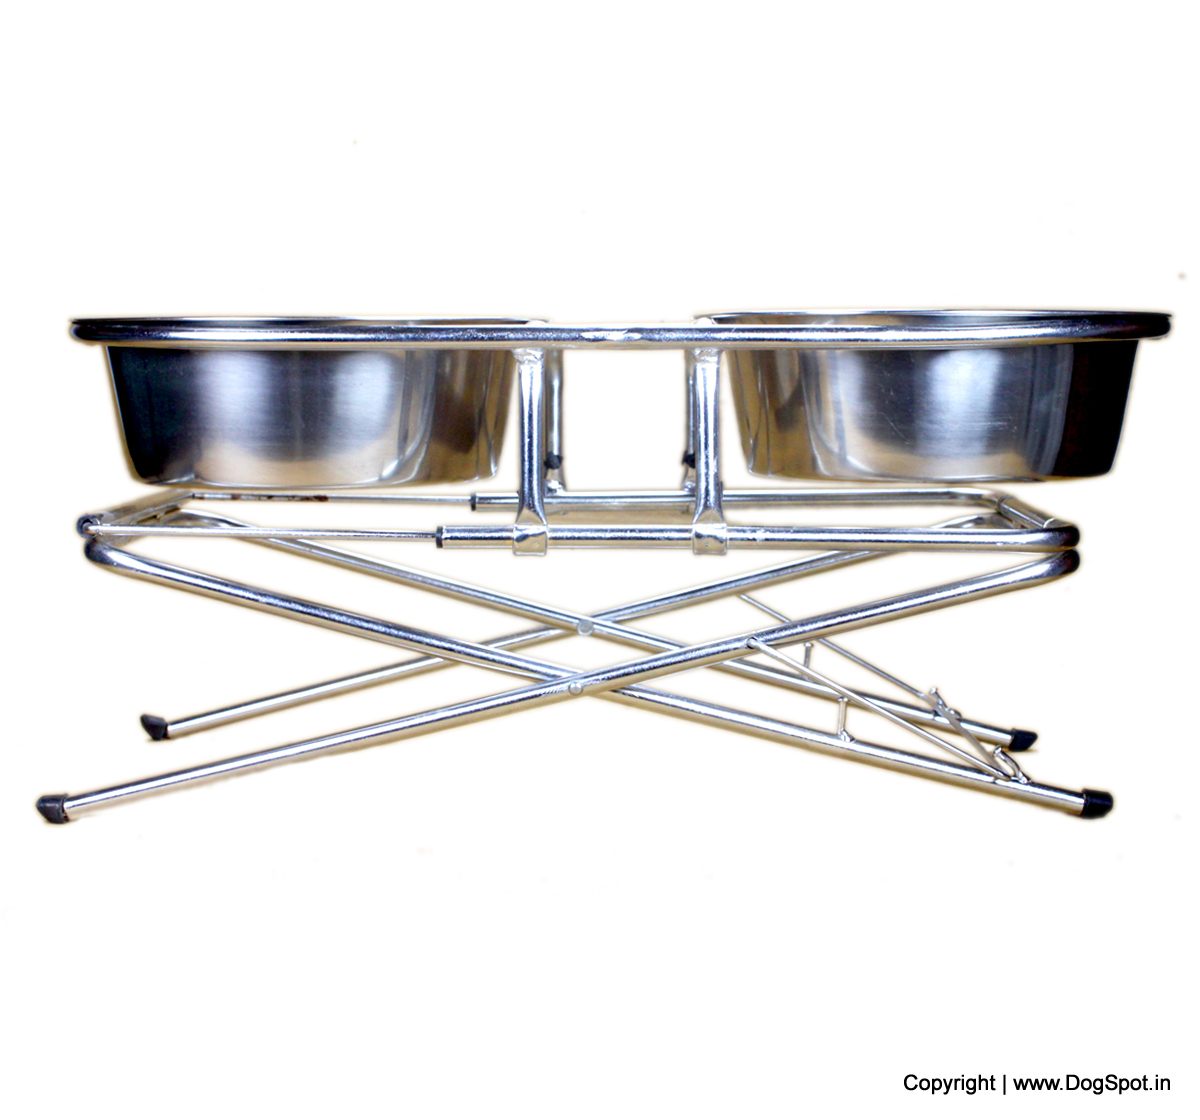 Dog Bowl Set With Collapsible Stand | DogSpot - Online Pet ... - photo#25